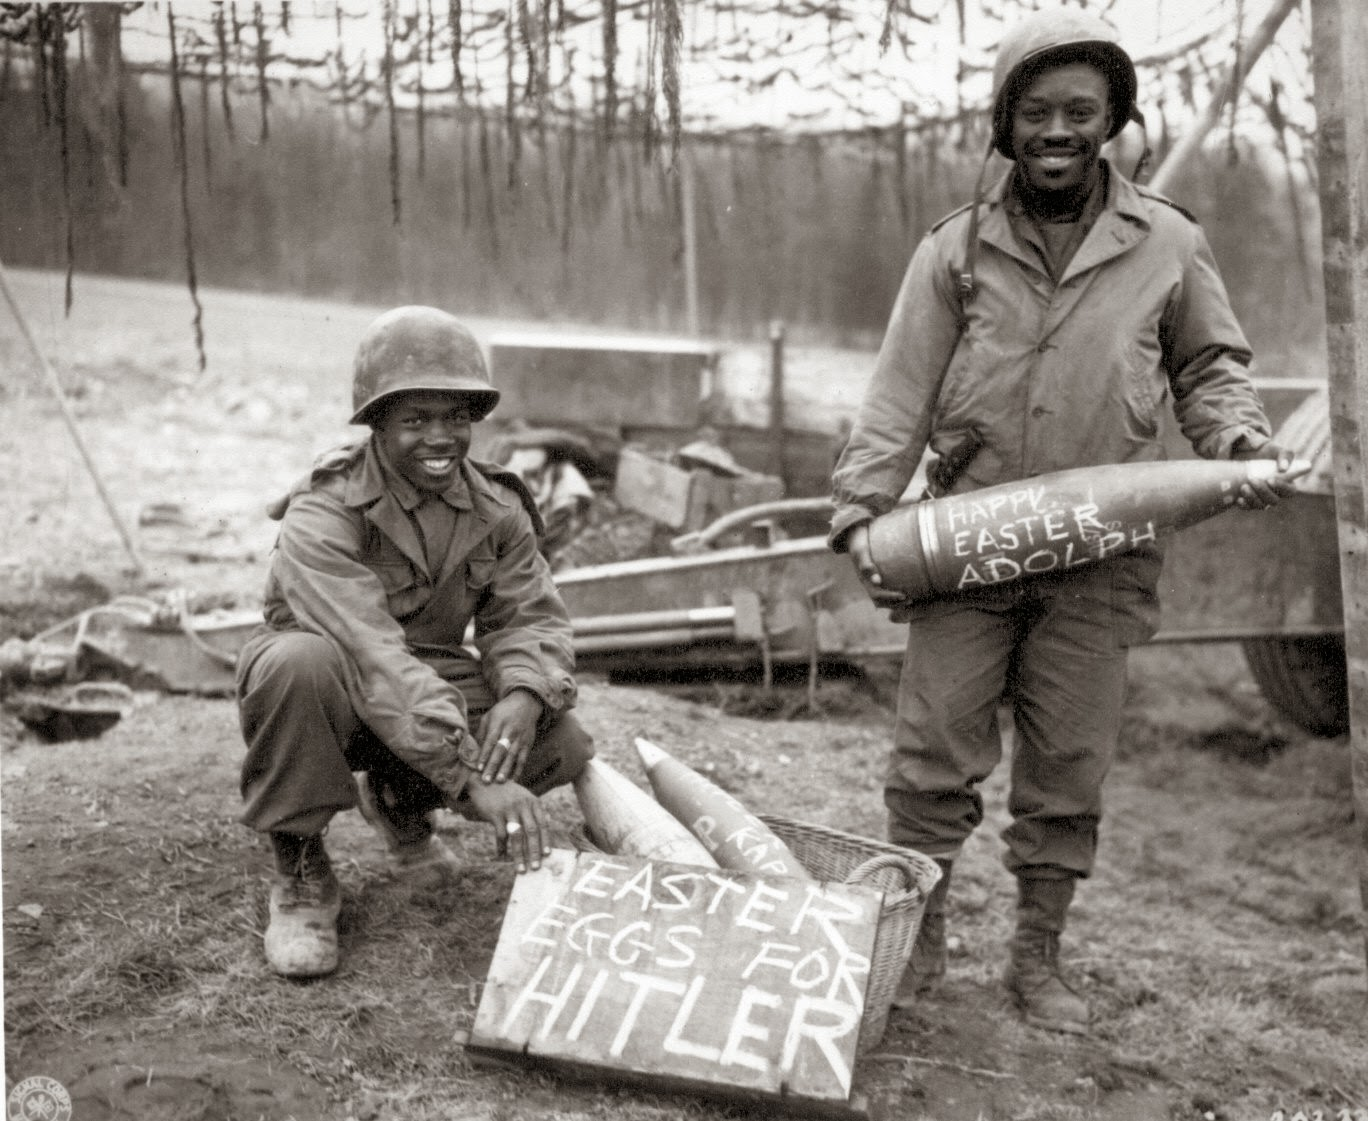 Easter eggs for Hitler, 445